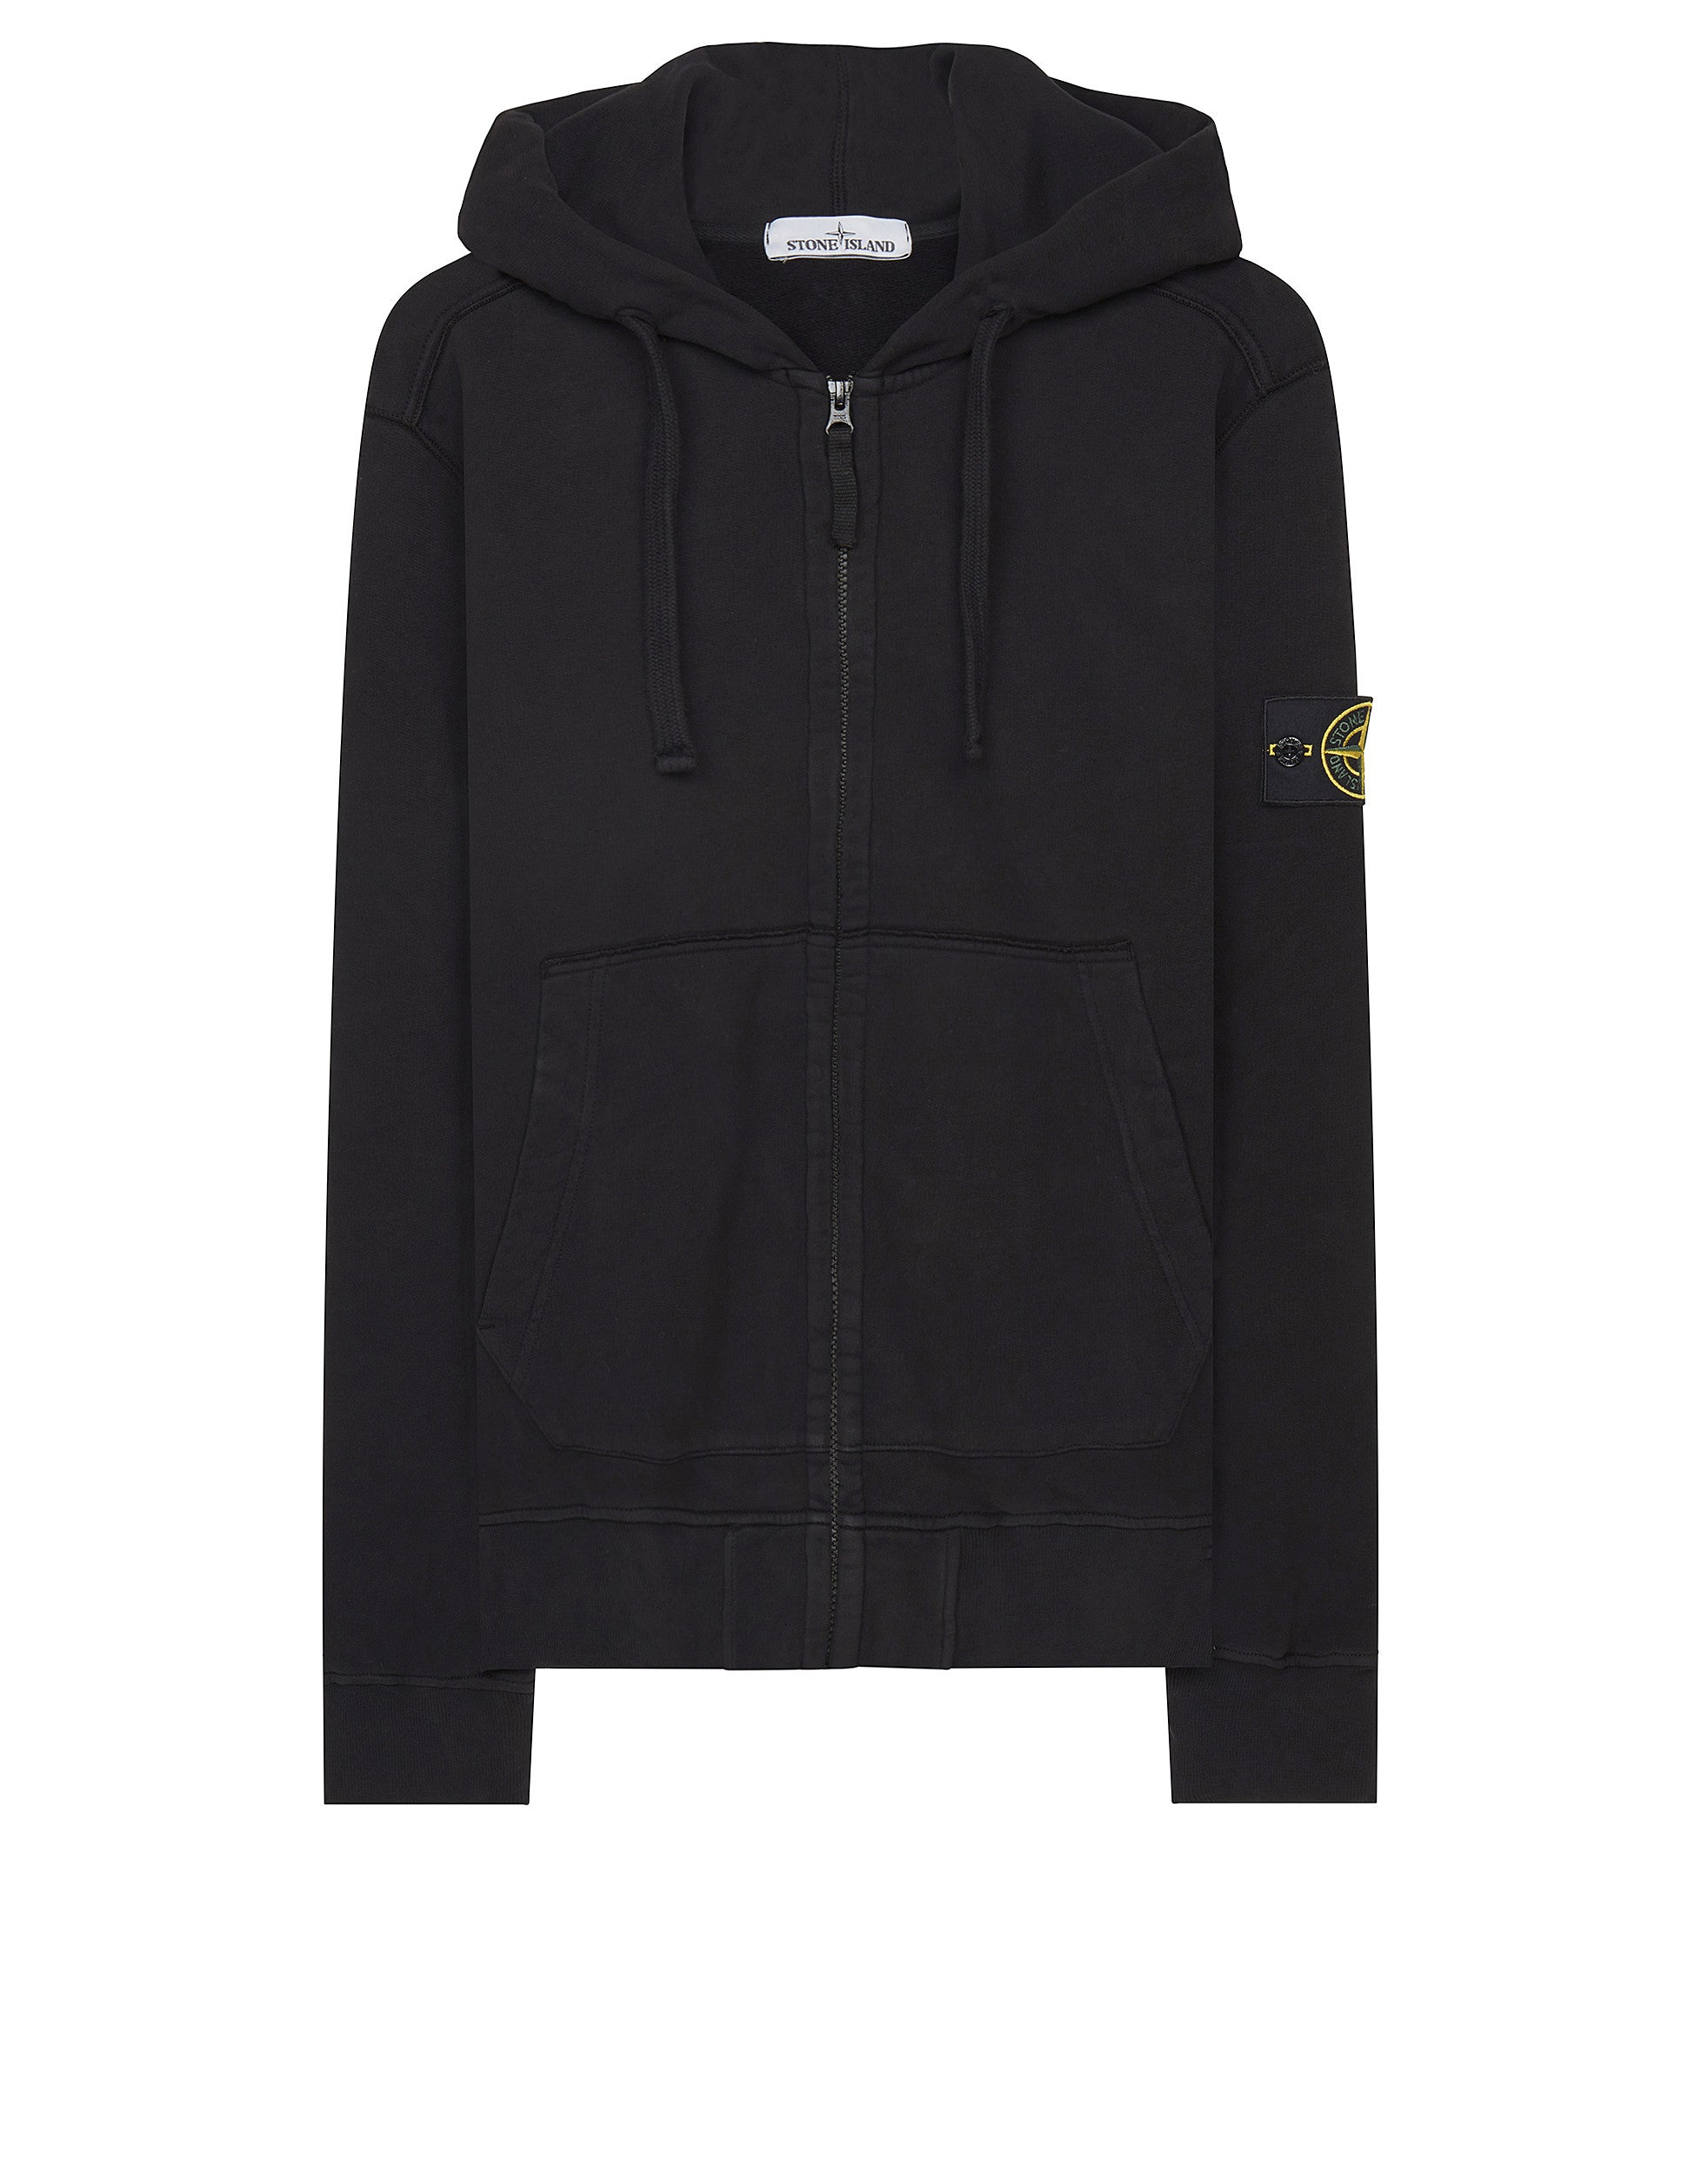 60220 Hooded Sweatshirt in Black